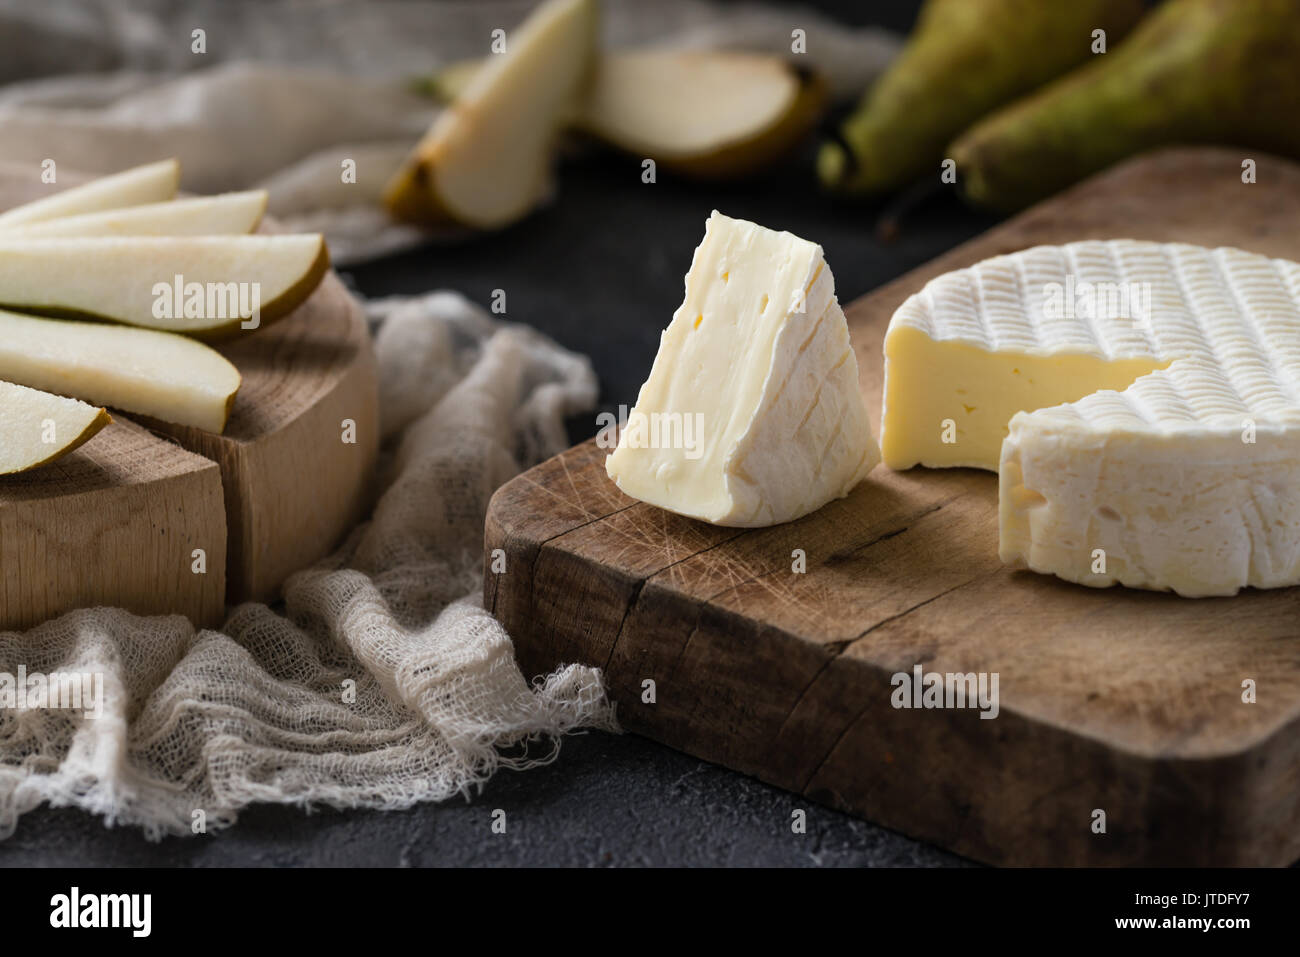 French soft cheese from Normandy region sliced with pear on a wooden board on dark rustic background - Stock Image